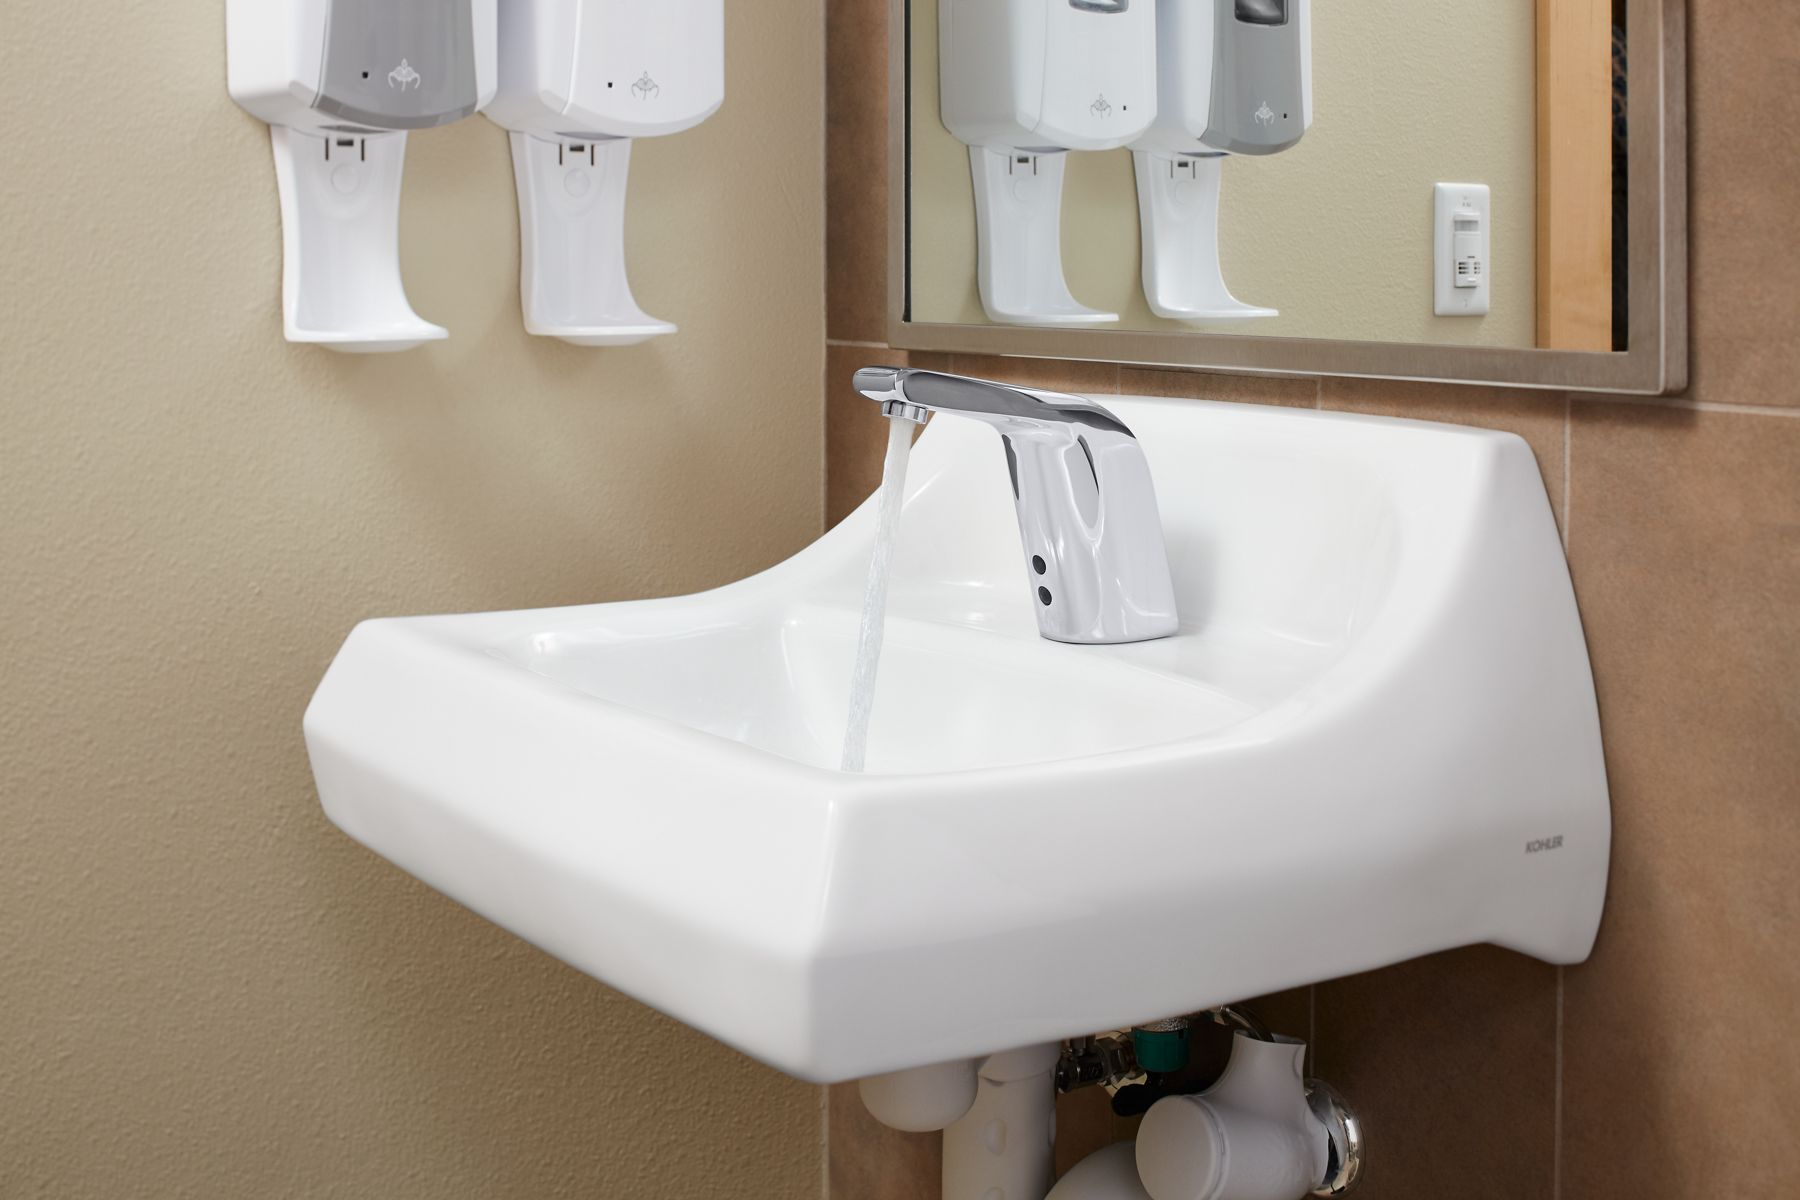 Exceptionnel Commercial Lavatories. Made To Withstand The Most Demanding Environments.